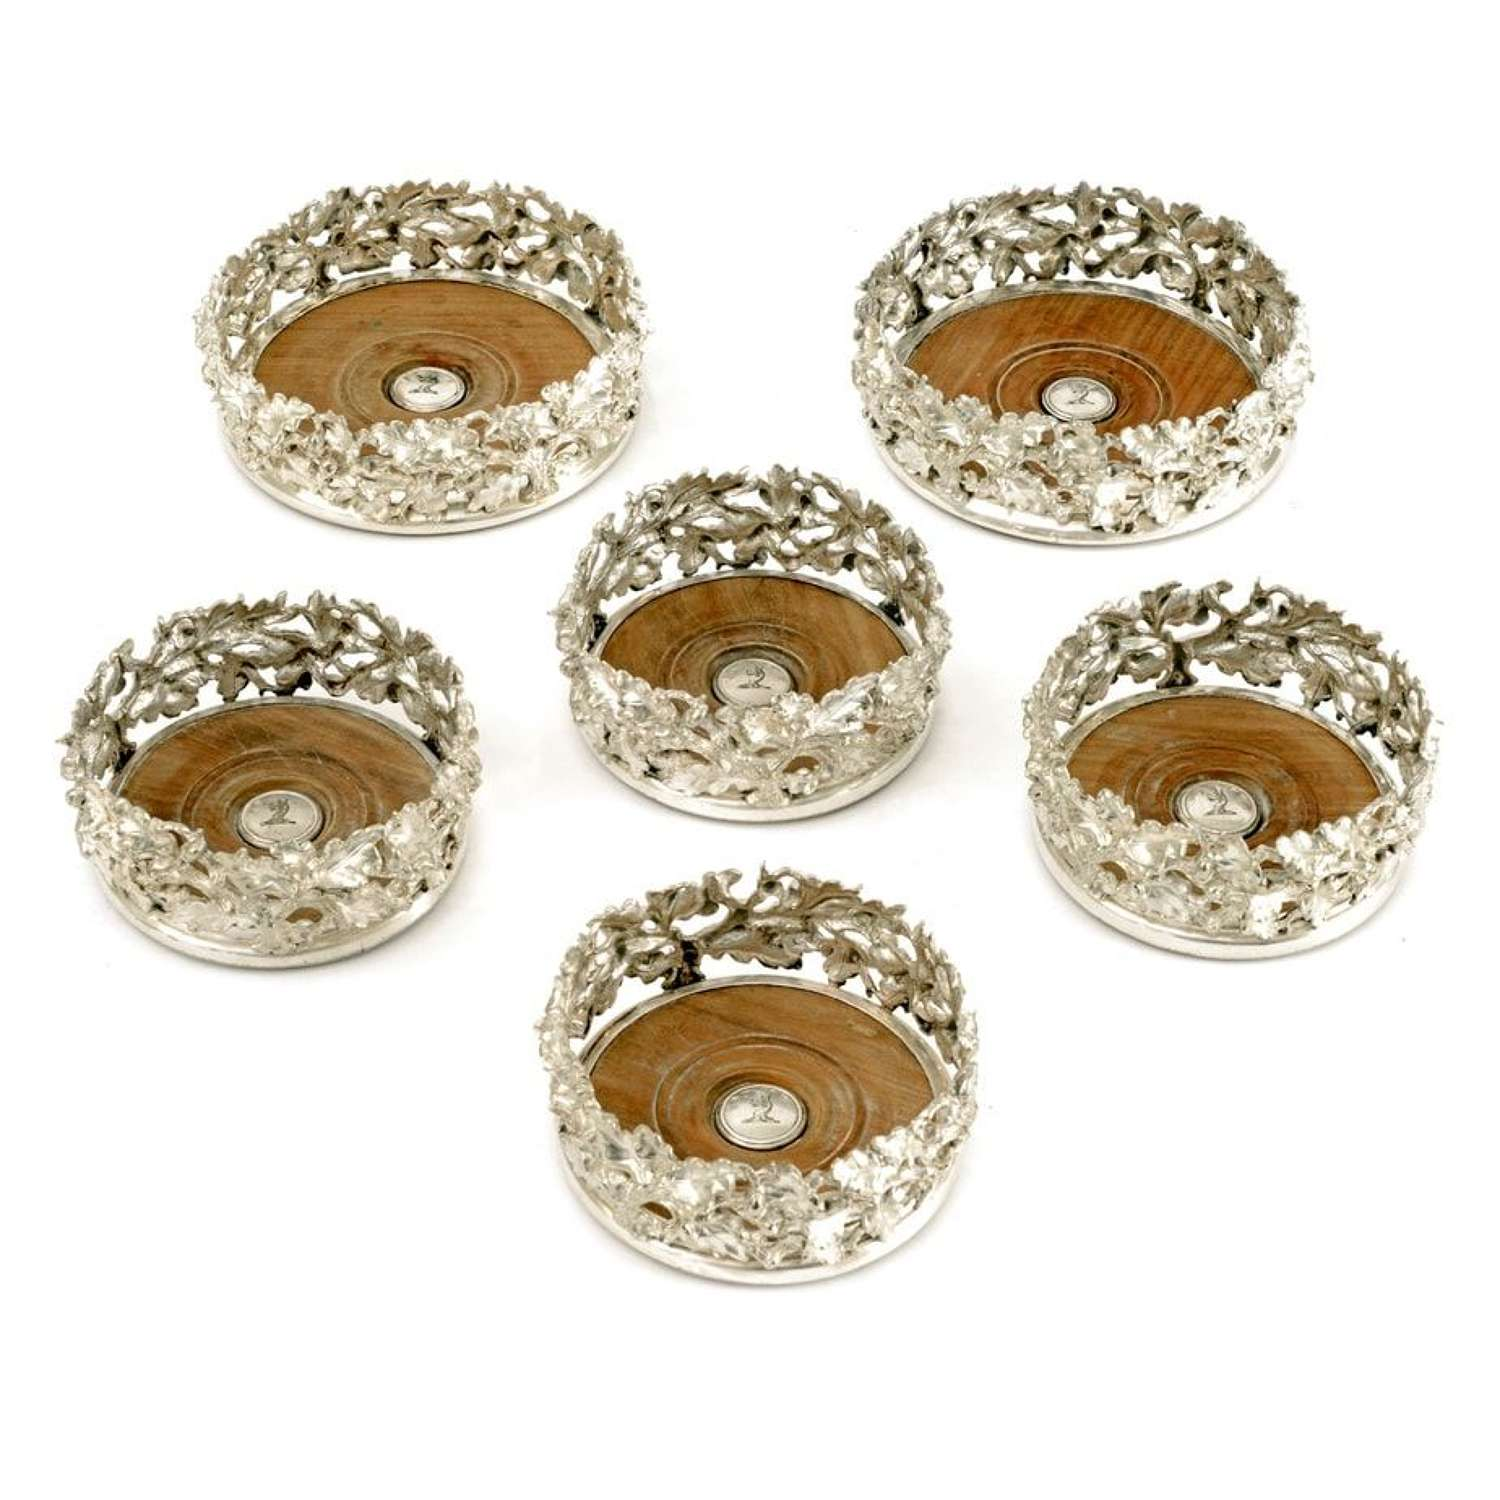 Set of 6 Elkington & Co silver plated coasters